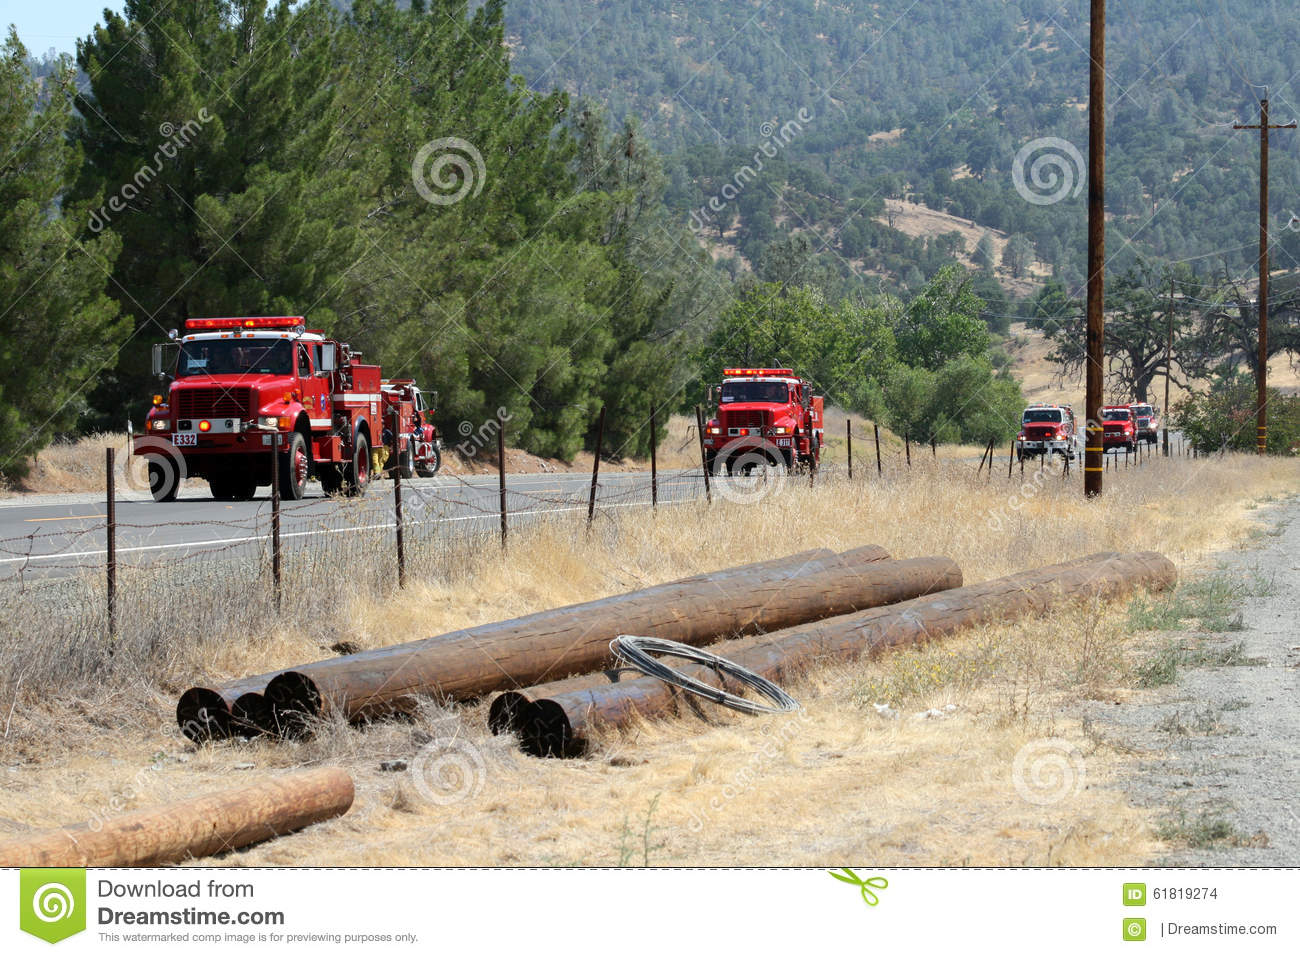 Convoy of fire engines heads to fire area